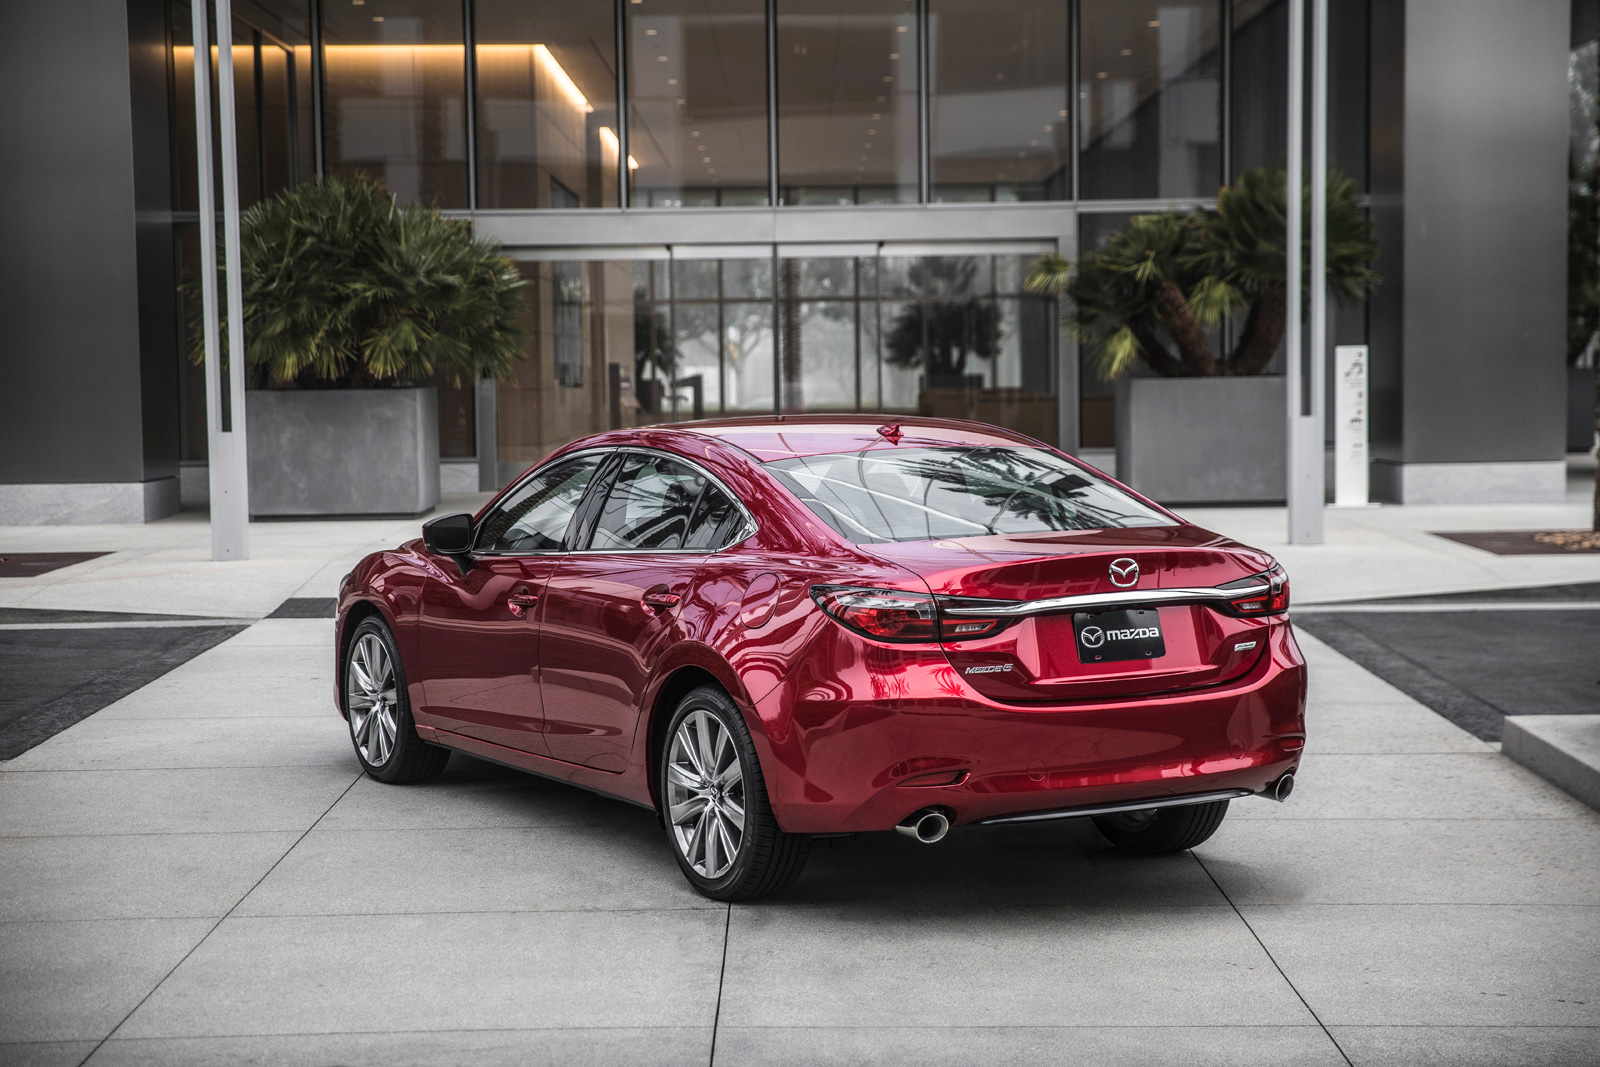 http://www.autoguide.com/blog/wp-content/gallery/2018-mazda6-official-gallery/2018-mazda6-06.jpg